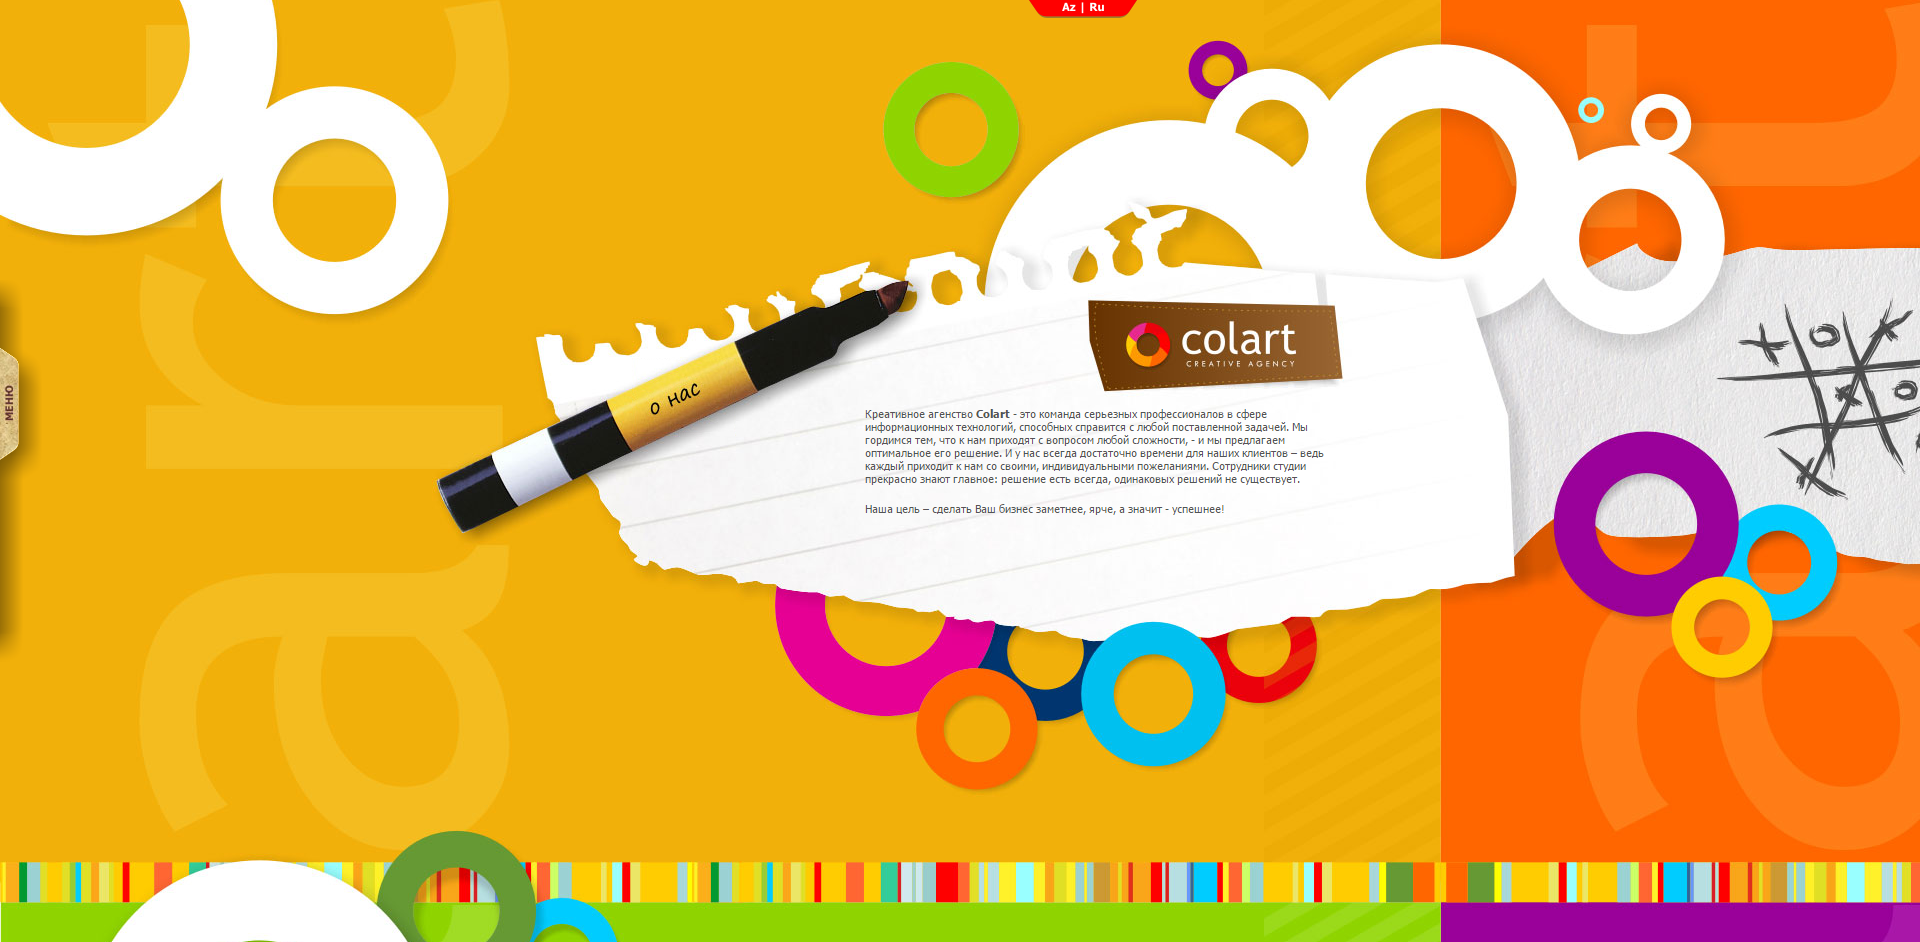 Colart screenshot